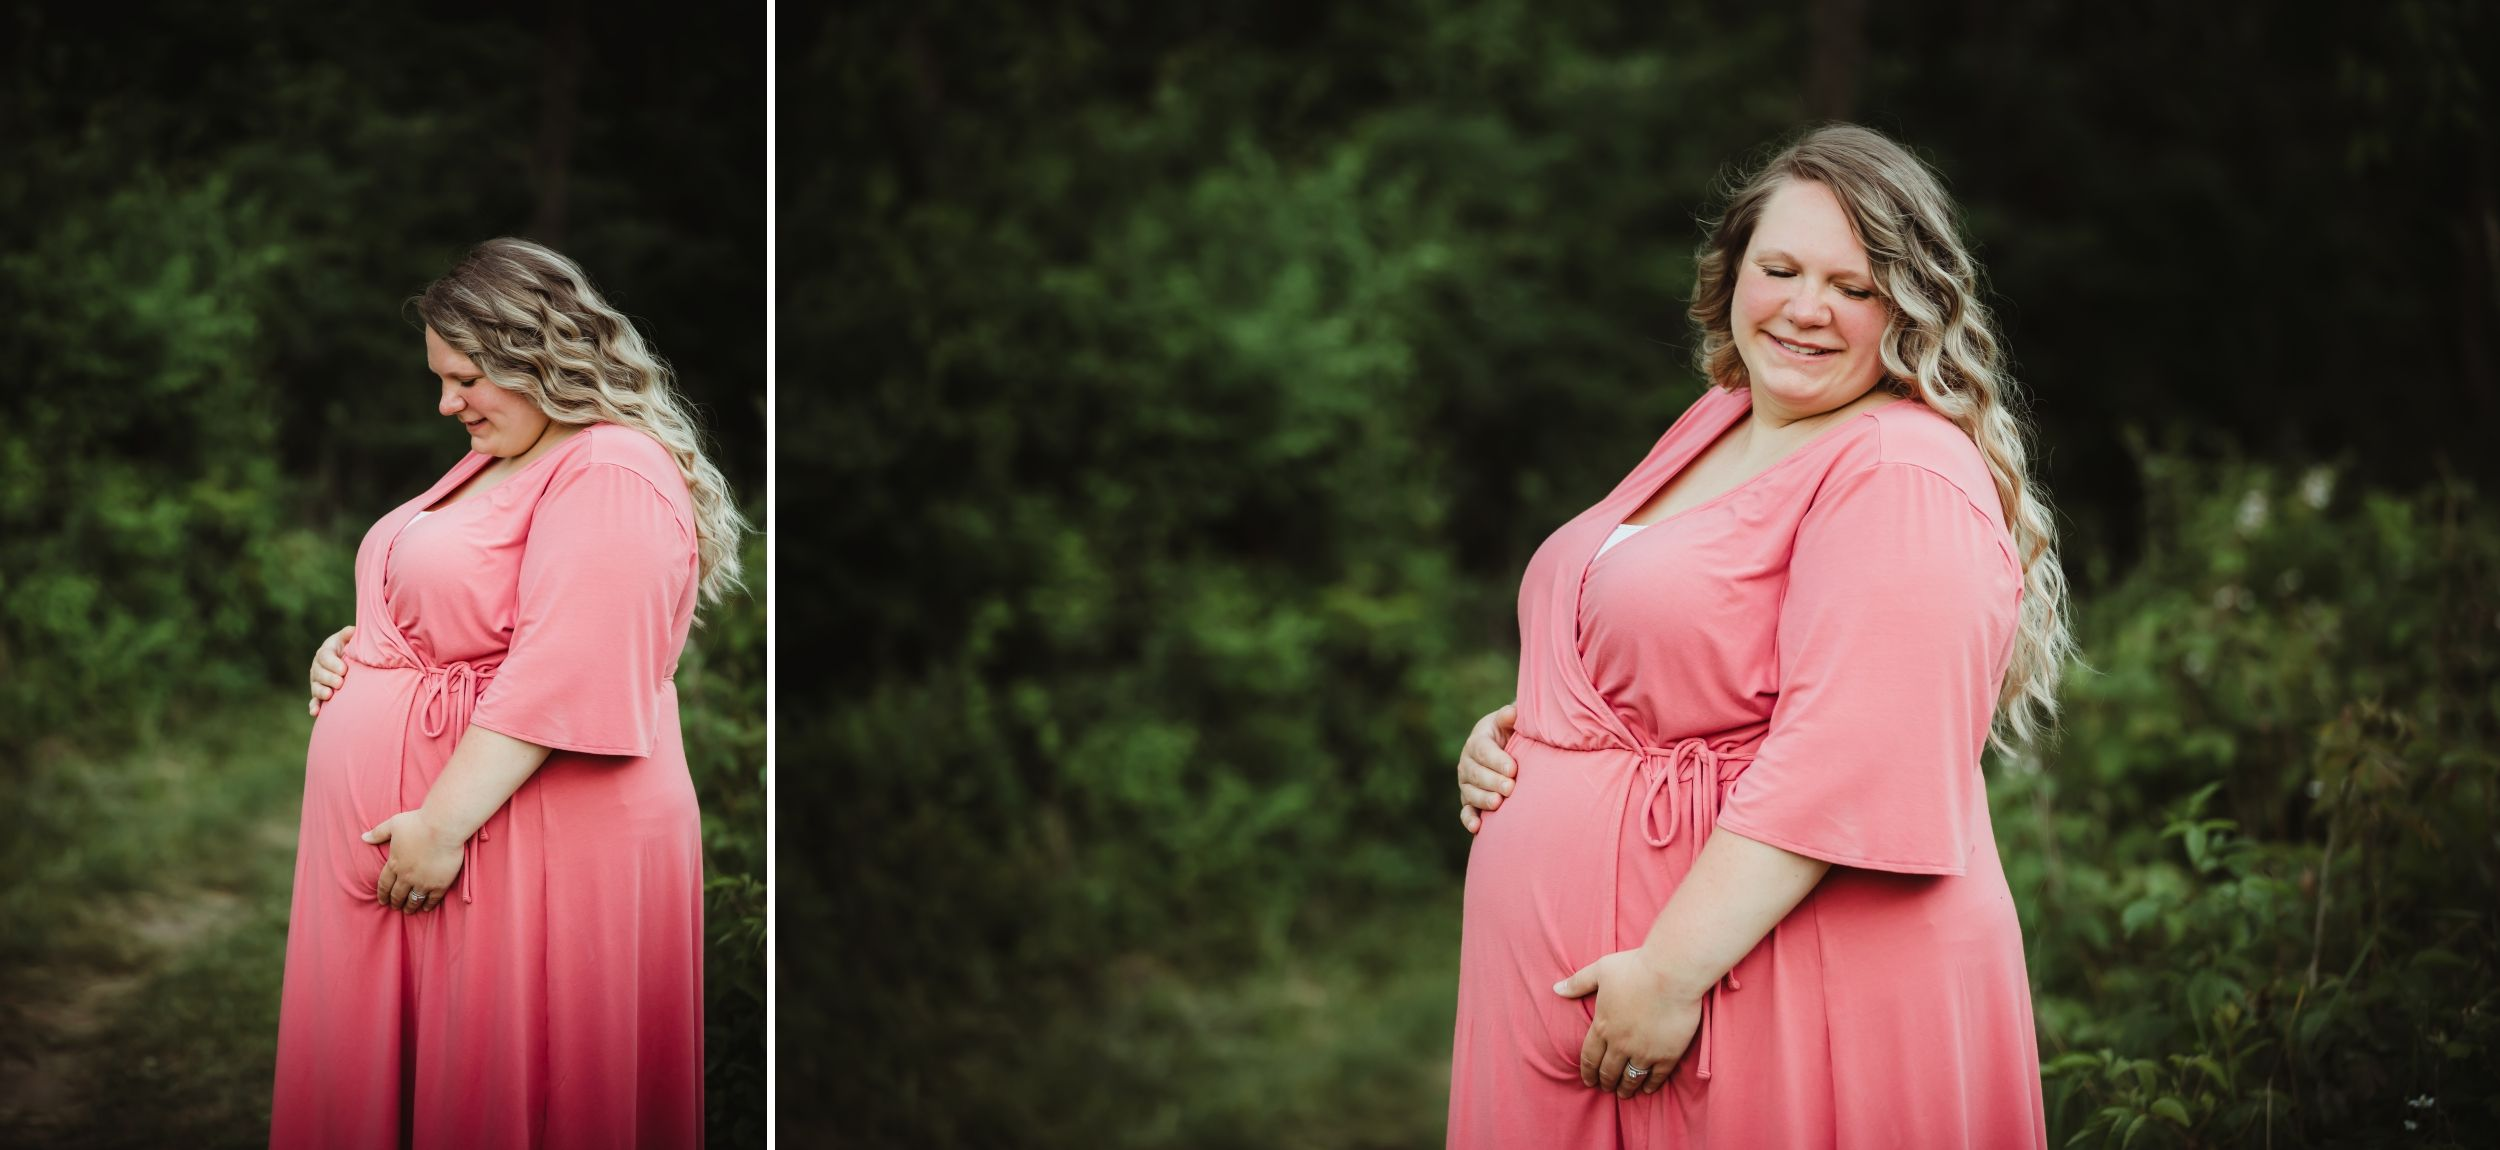 Pregnant woman in a long pink dress holding her belly and smiling with greenery around her.